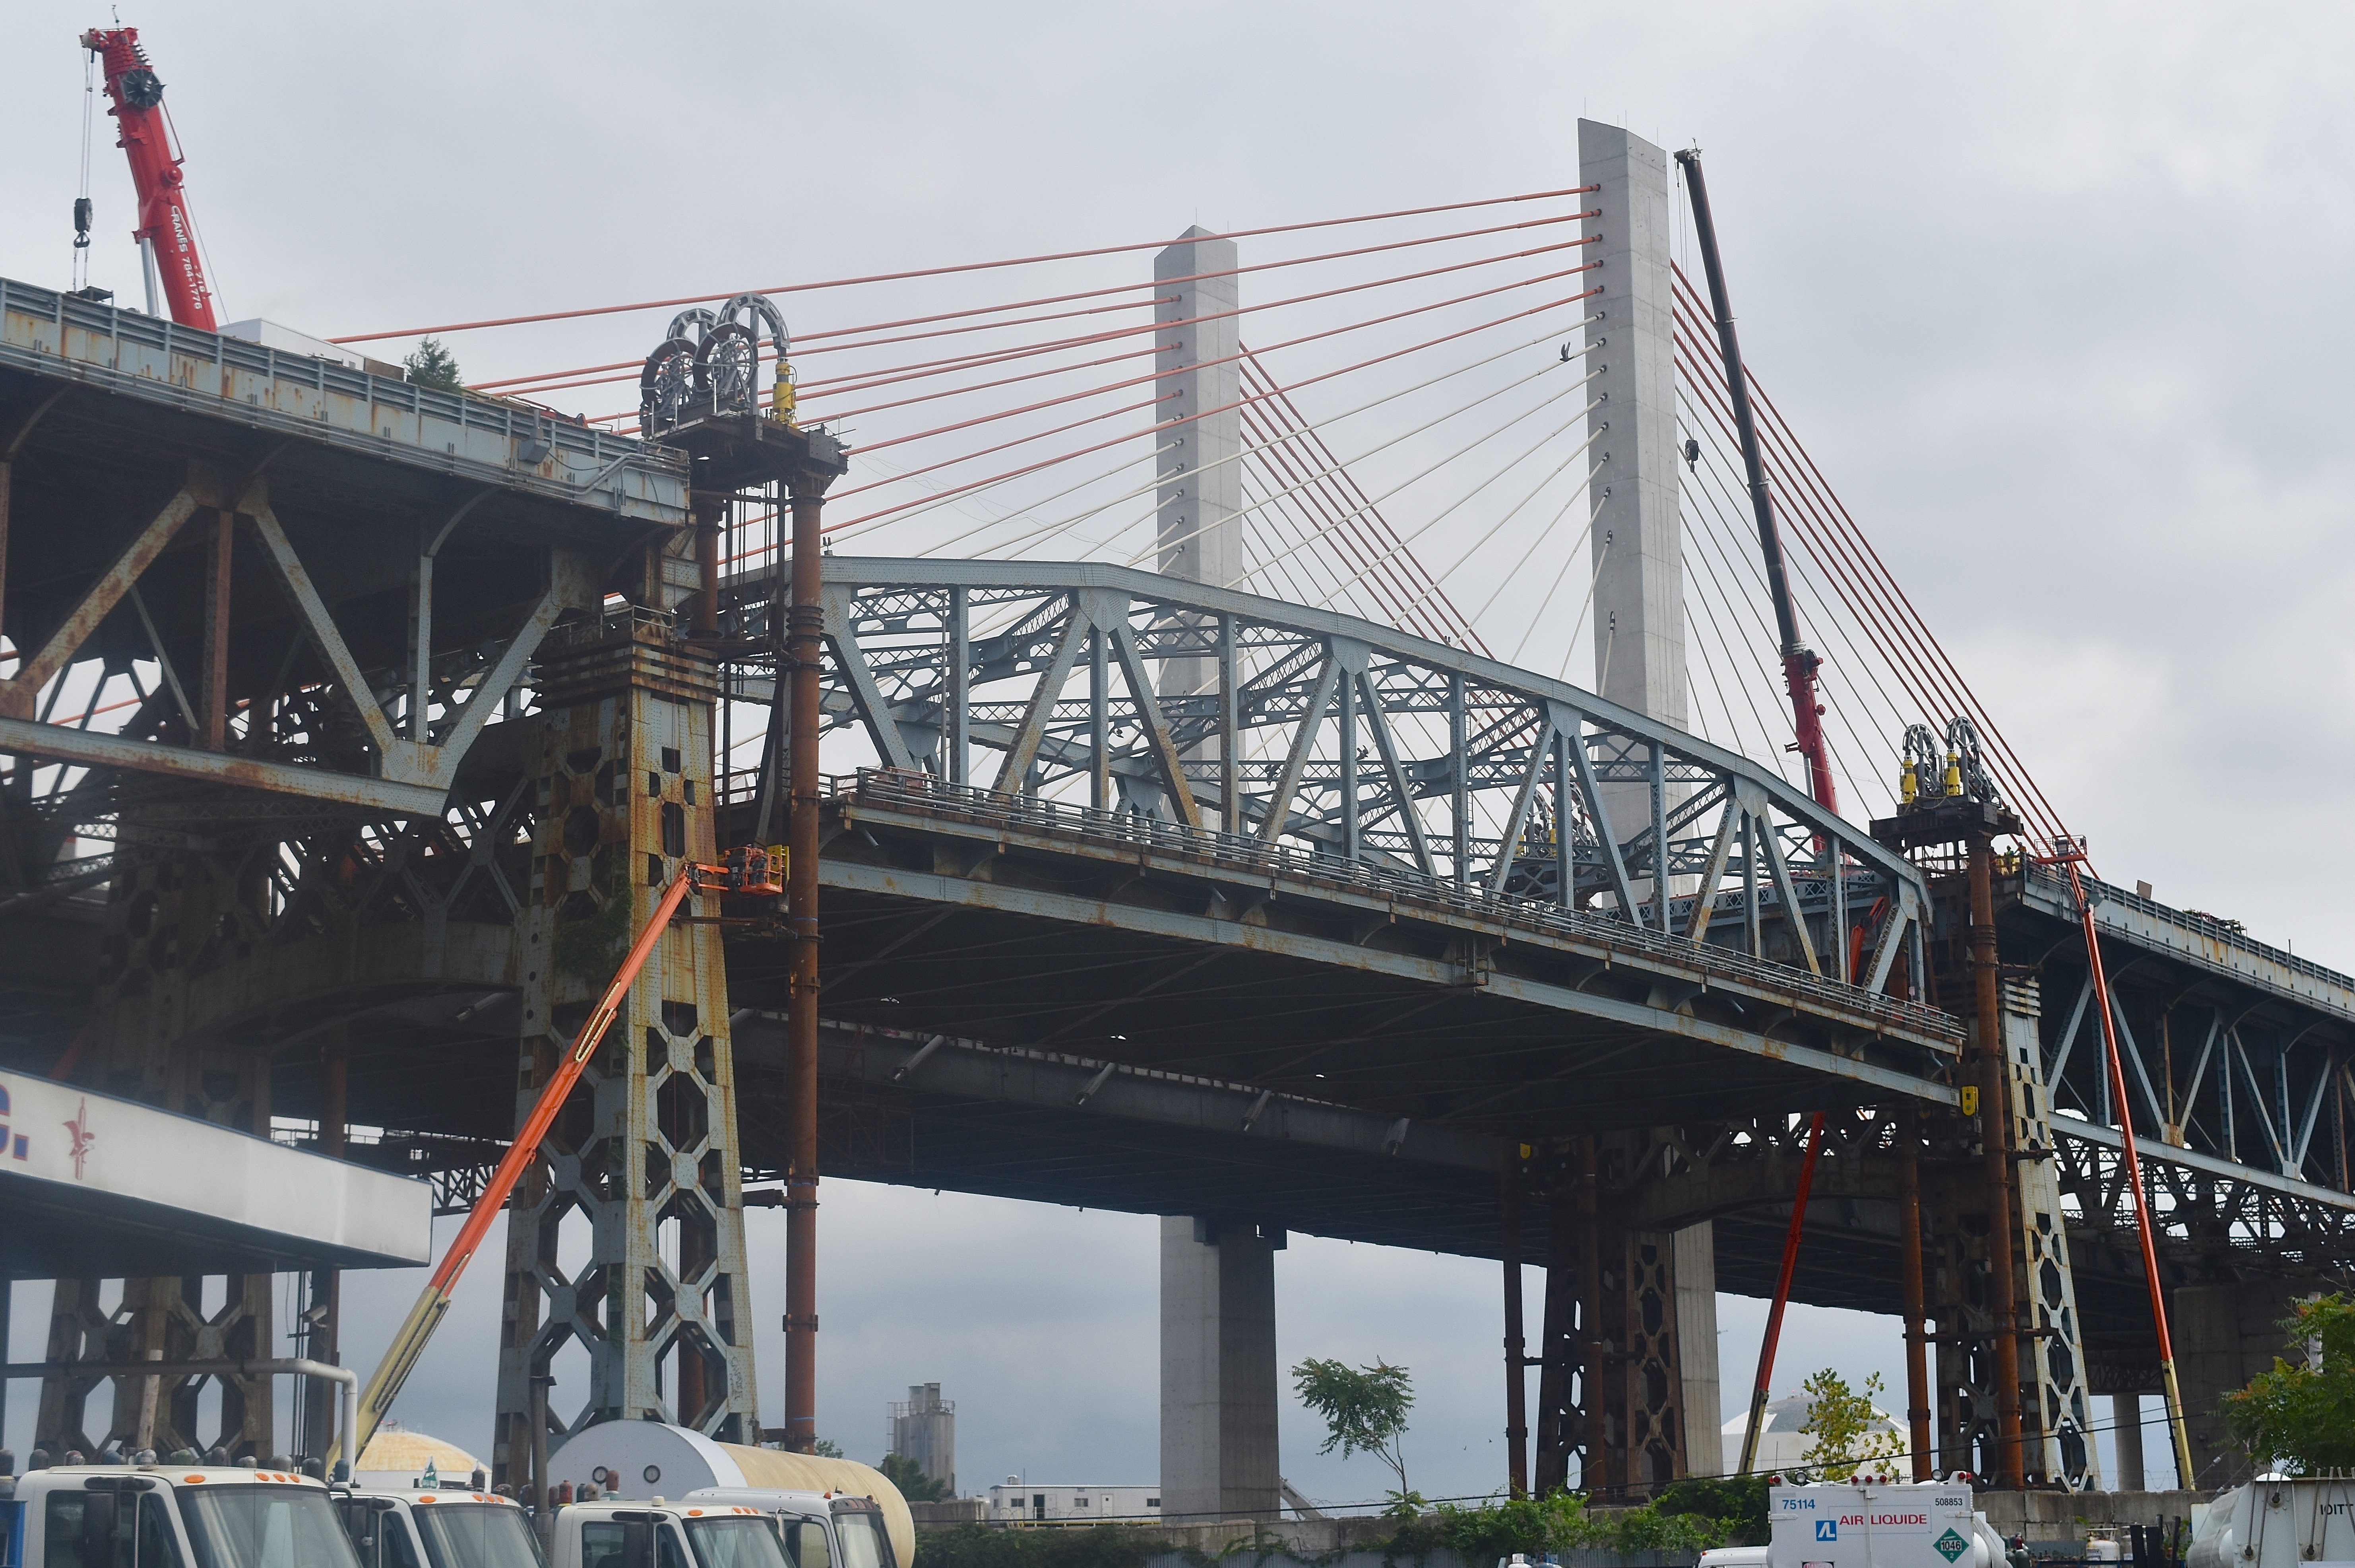 Old Kosciuszko Bridge implosion is finally set to take place on Sunday, Oct. 1